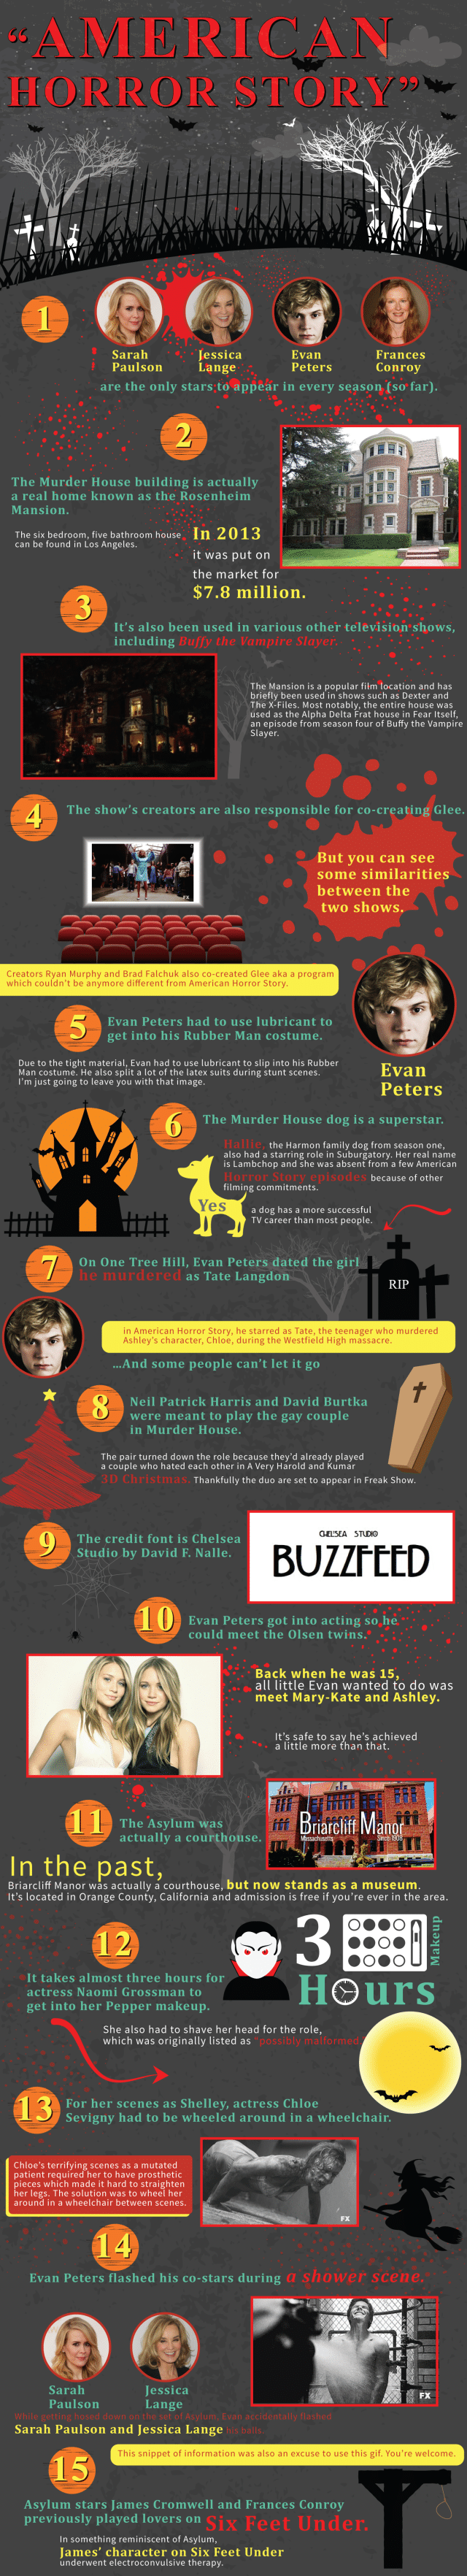 American Horror Story Infographic